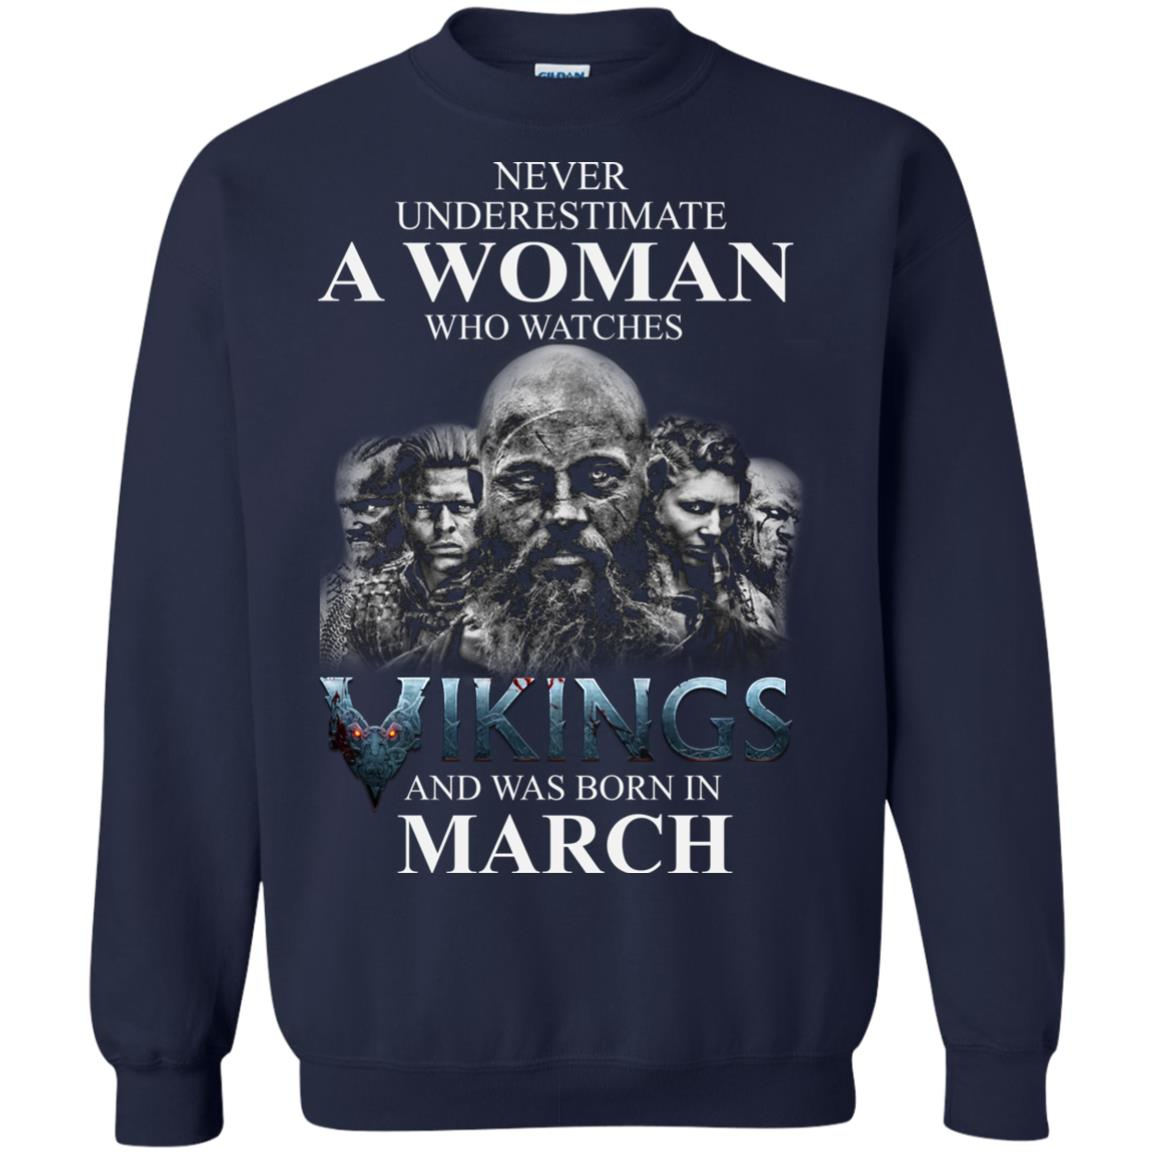 image 1334 - Never Underestimate A woman who watches Vikings and was born in March shirt